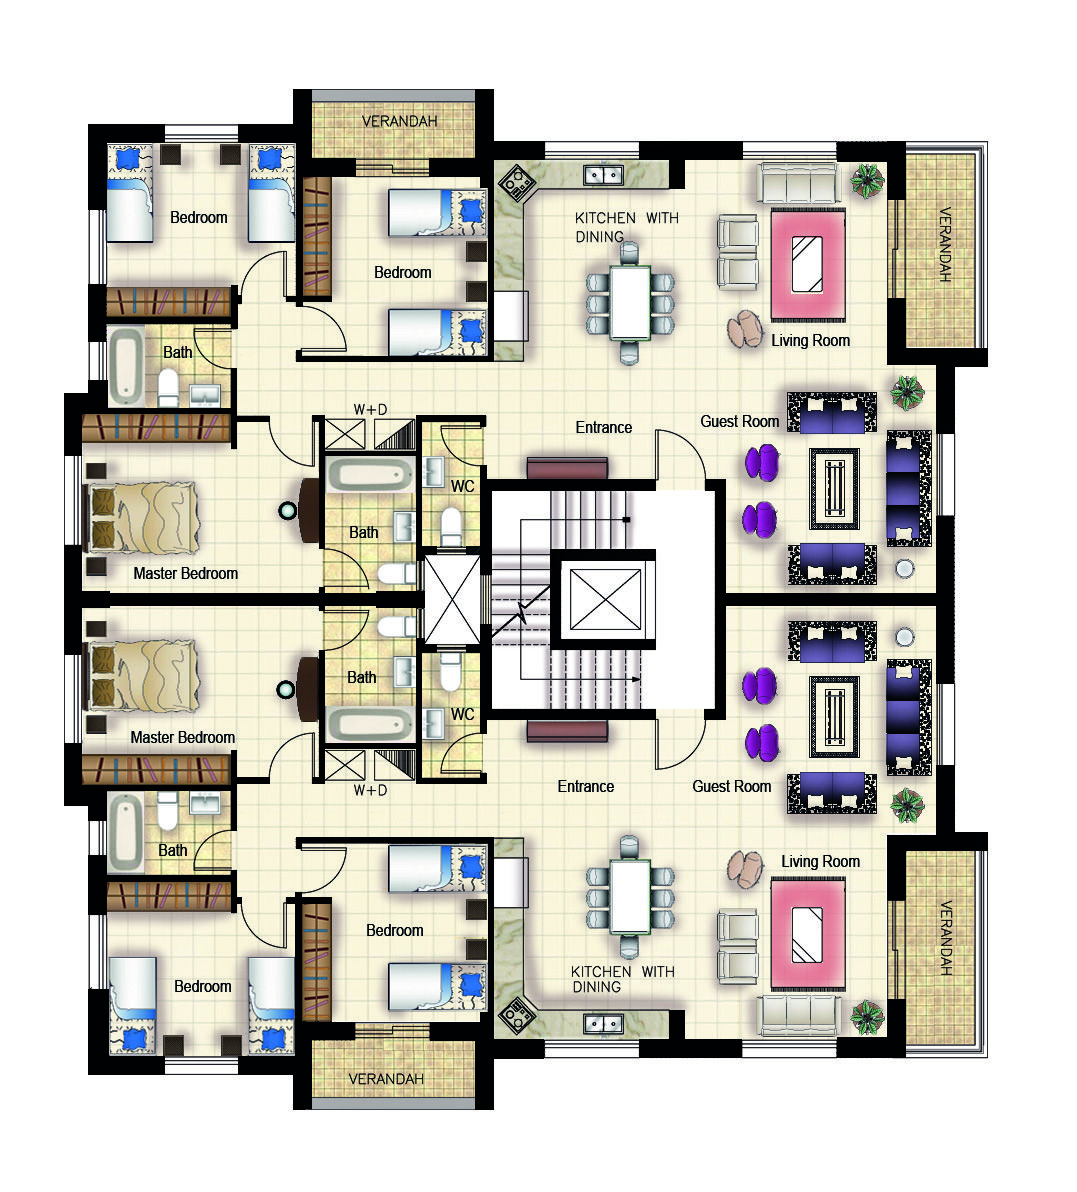 Residential Building Ramallah Typical Plan My Work In Assia Engineering Office Residential Building Plan Architectural Floor Plans Office Building Plans